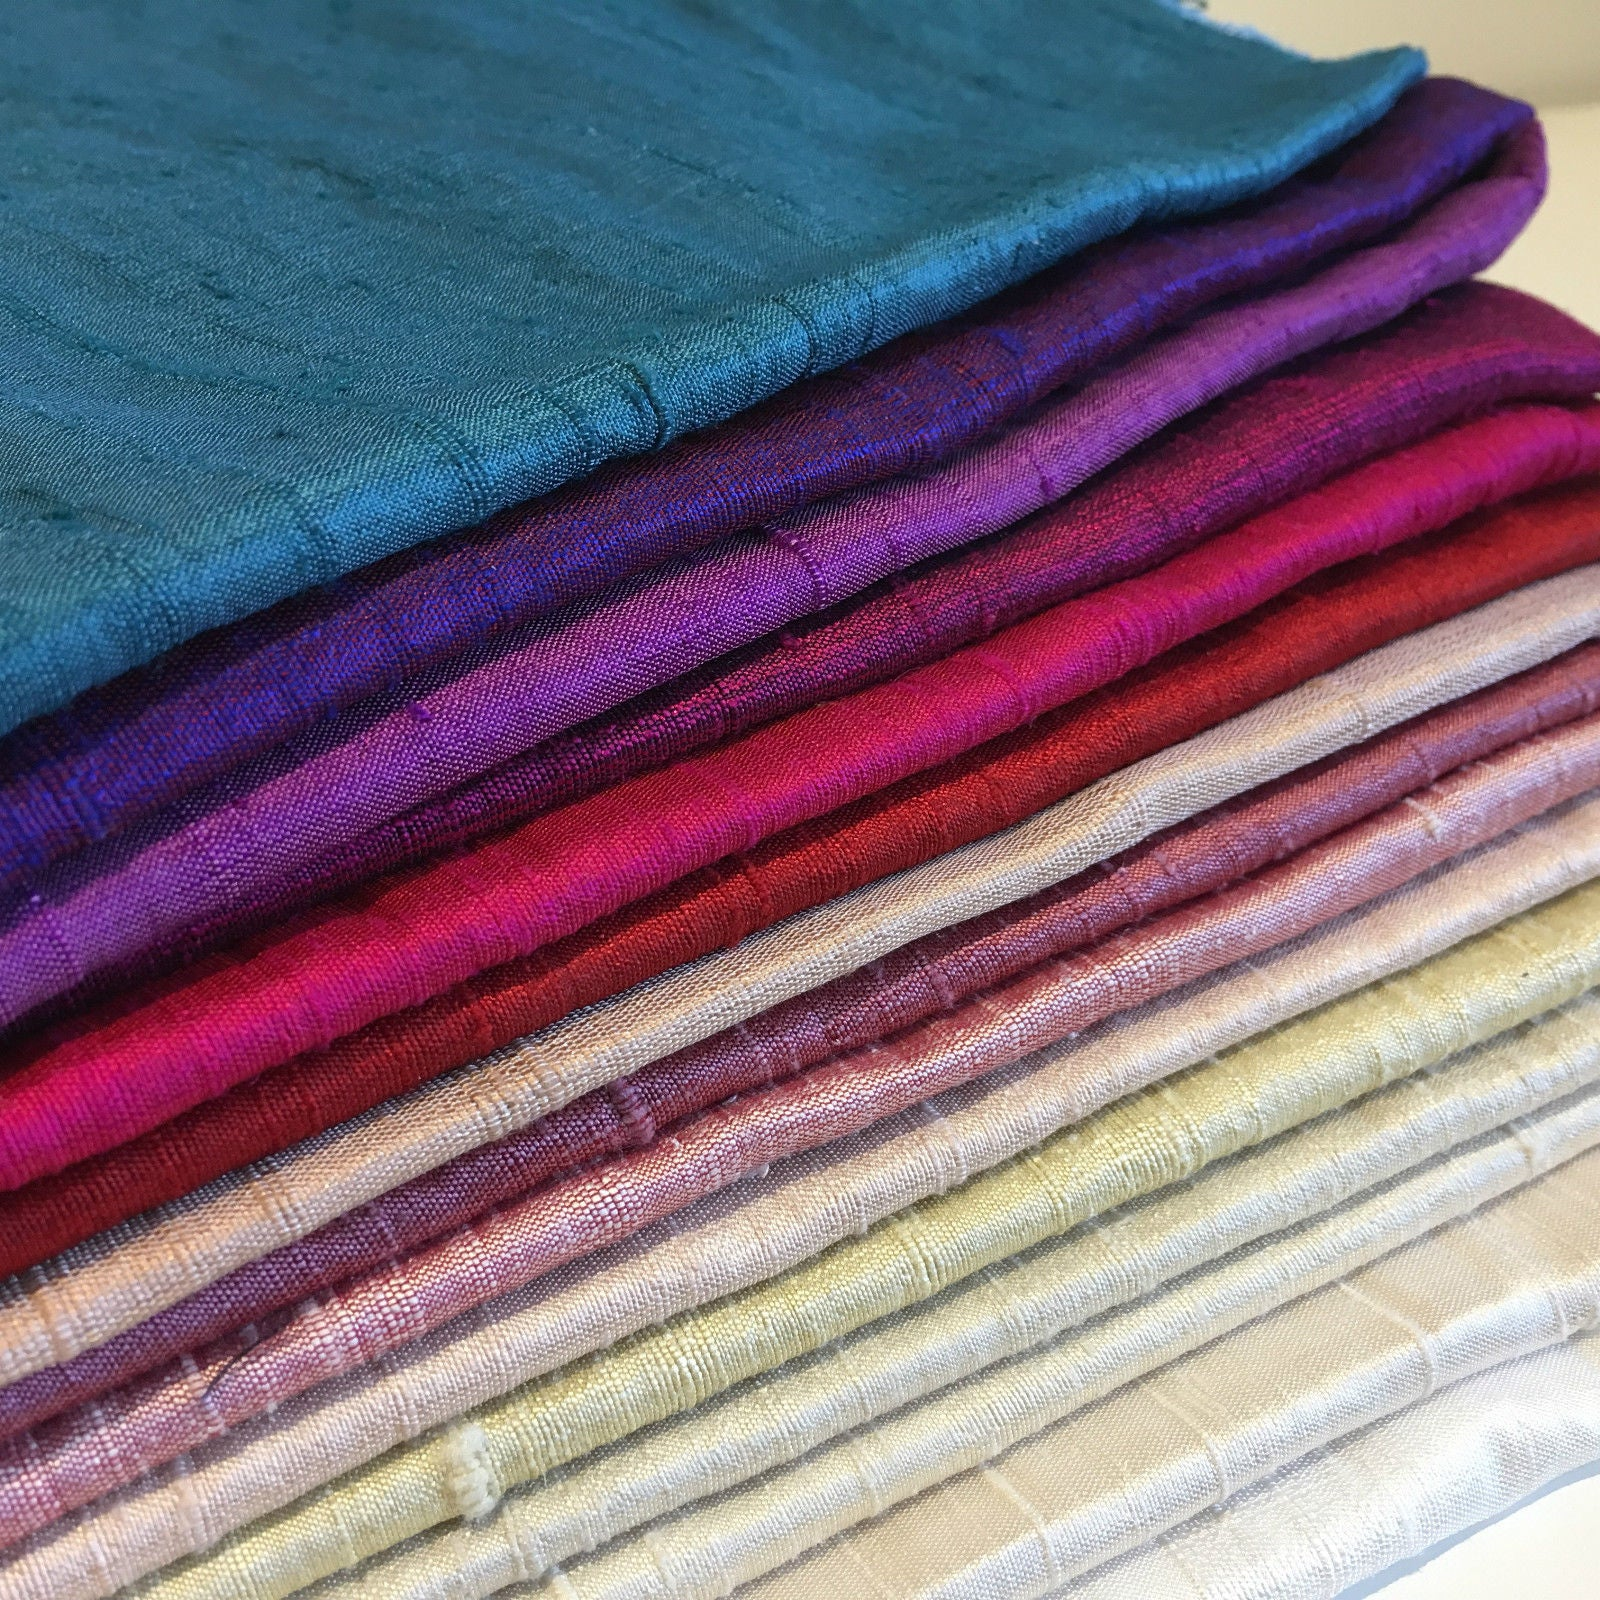 "Pure 100% Silk Handloom Dupion Fabric 44"" Wide Sold By Half Metre M685 61-97"